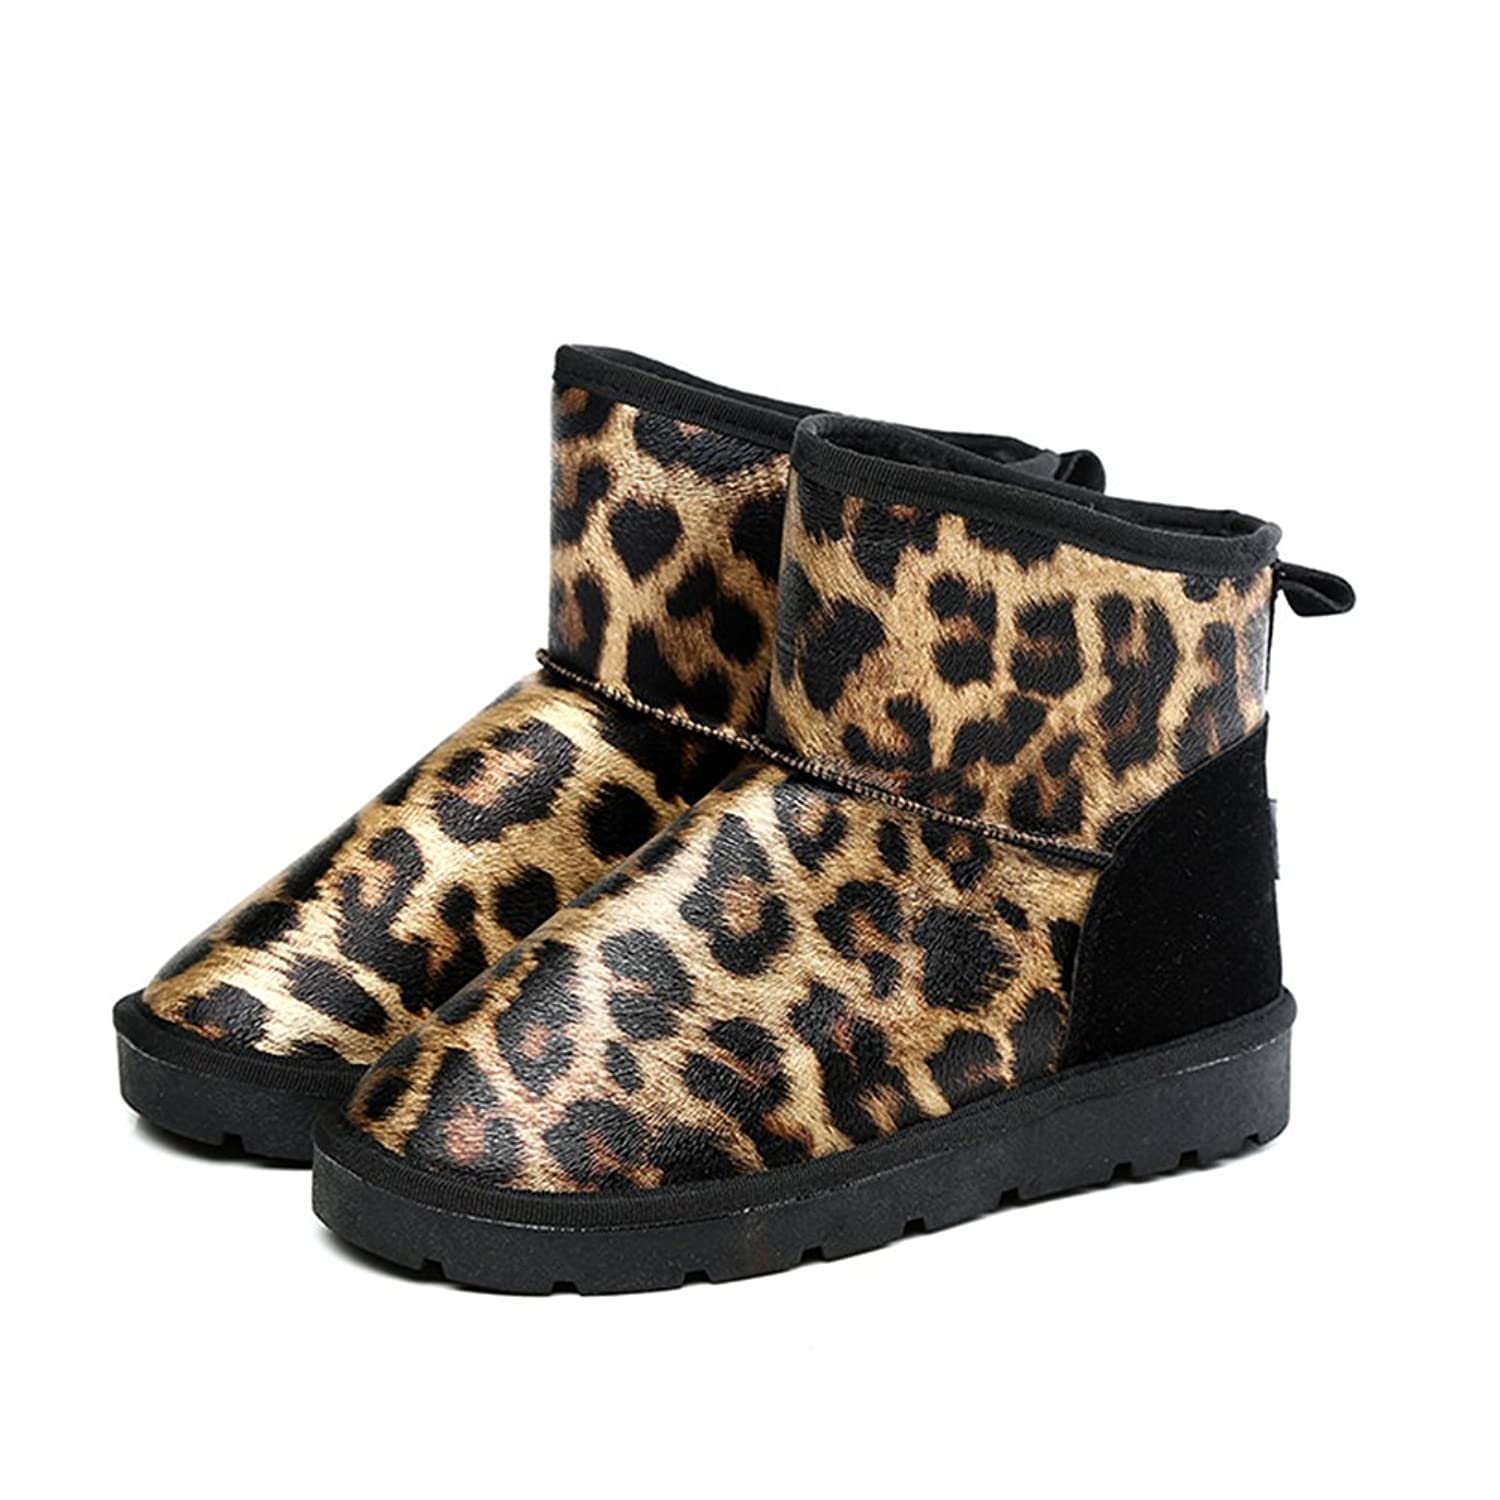 Agowoo Womens Leopard Faux Fur Fuzzy Lining Ankle High Snow Boots